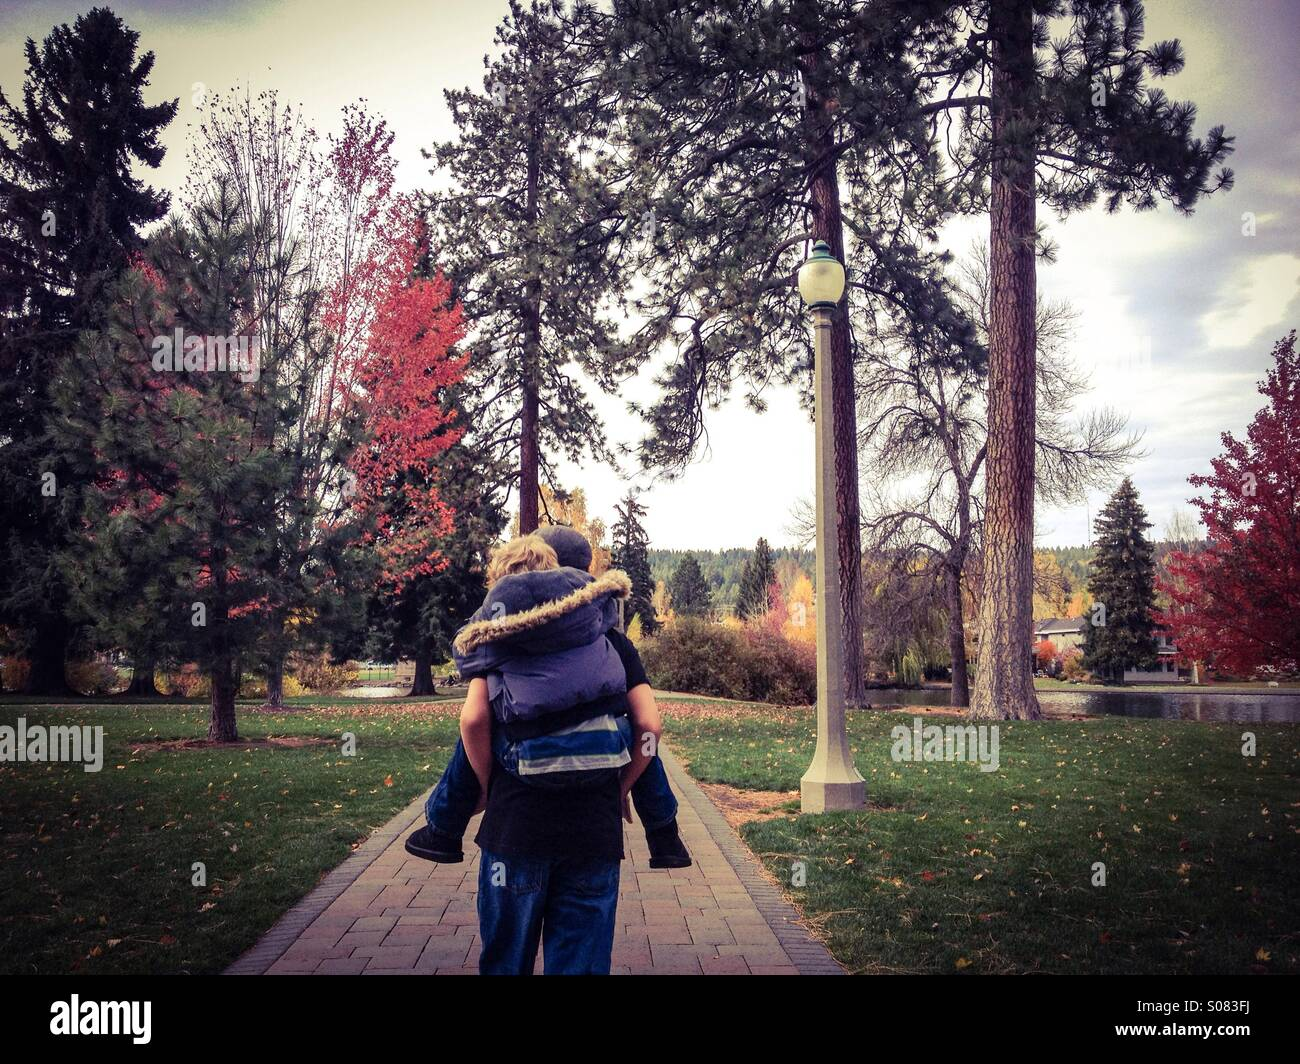 Piggy backing - Stock Image